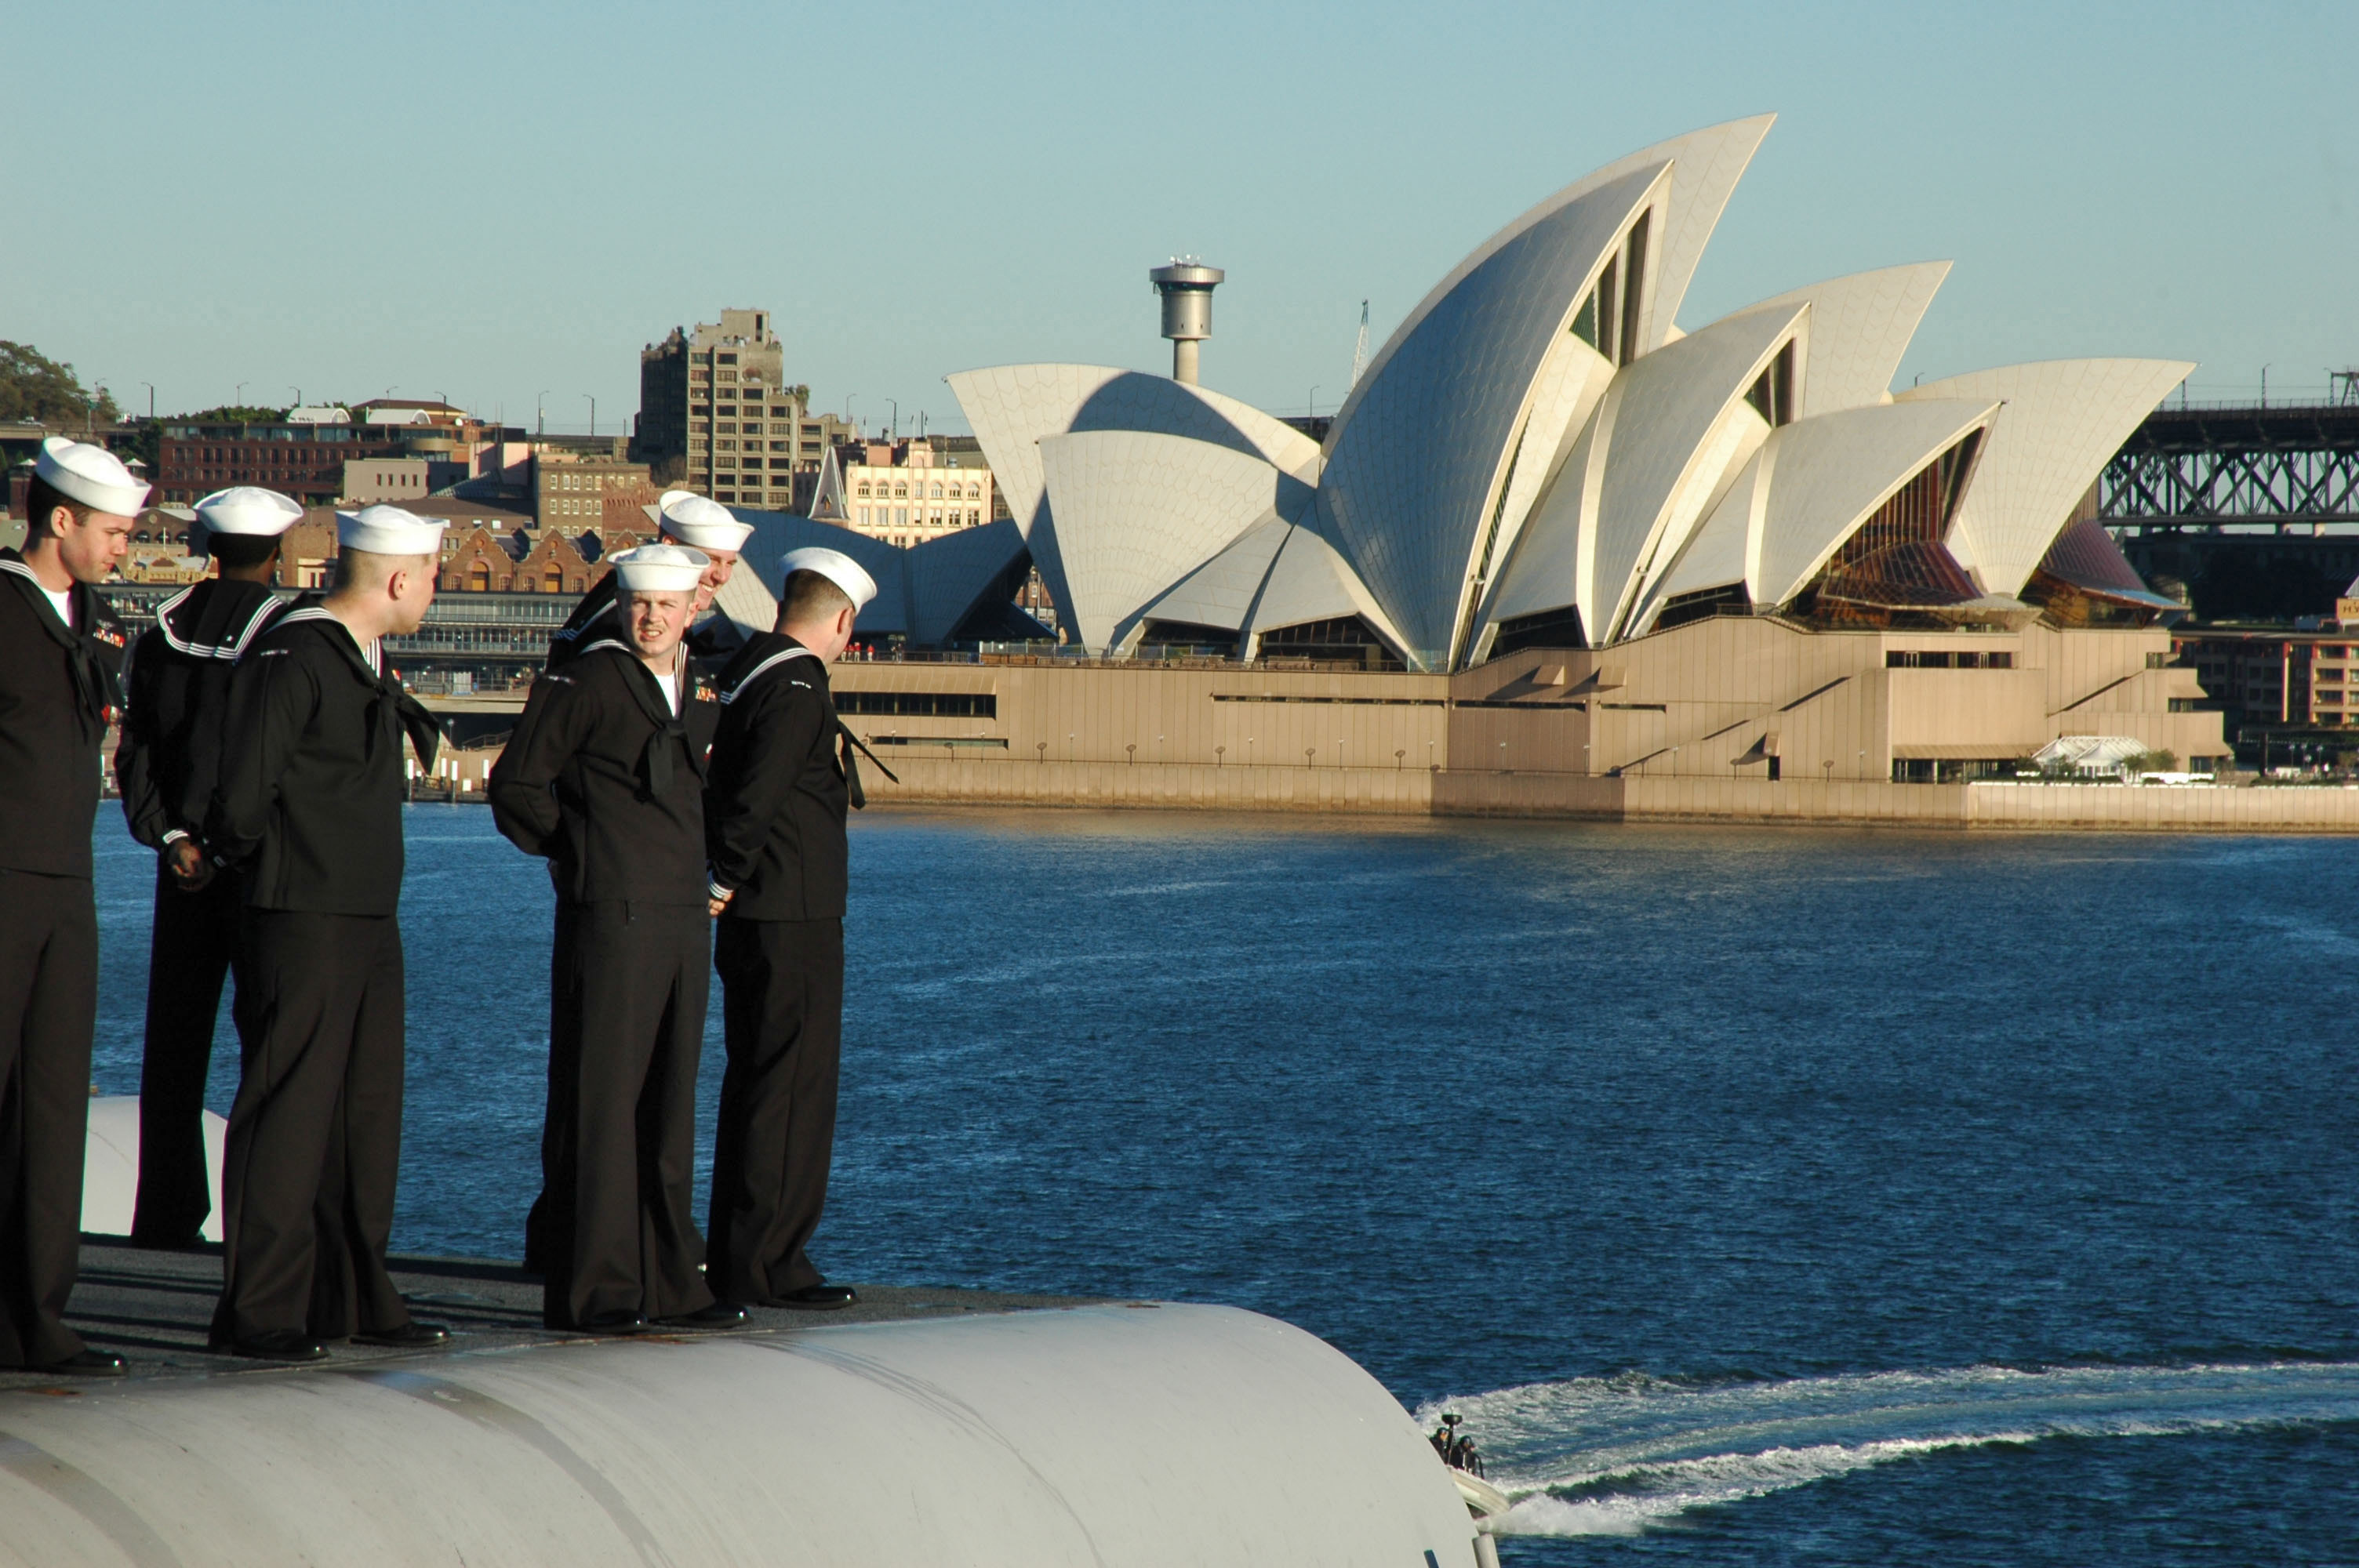 U.S. sailors man the rails aboard USS Kitty Hawk (CV-63) sails the Sydney Opera House while pulling into Sydney, Australia in 2005. US Navy Photo